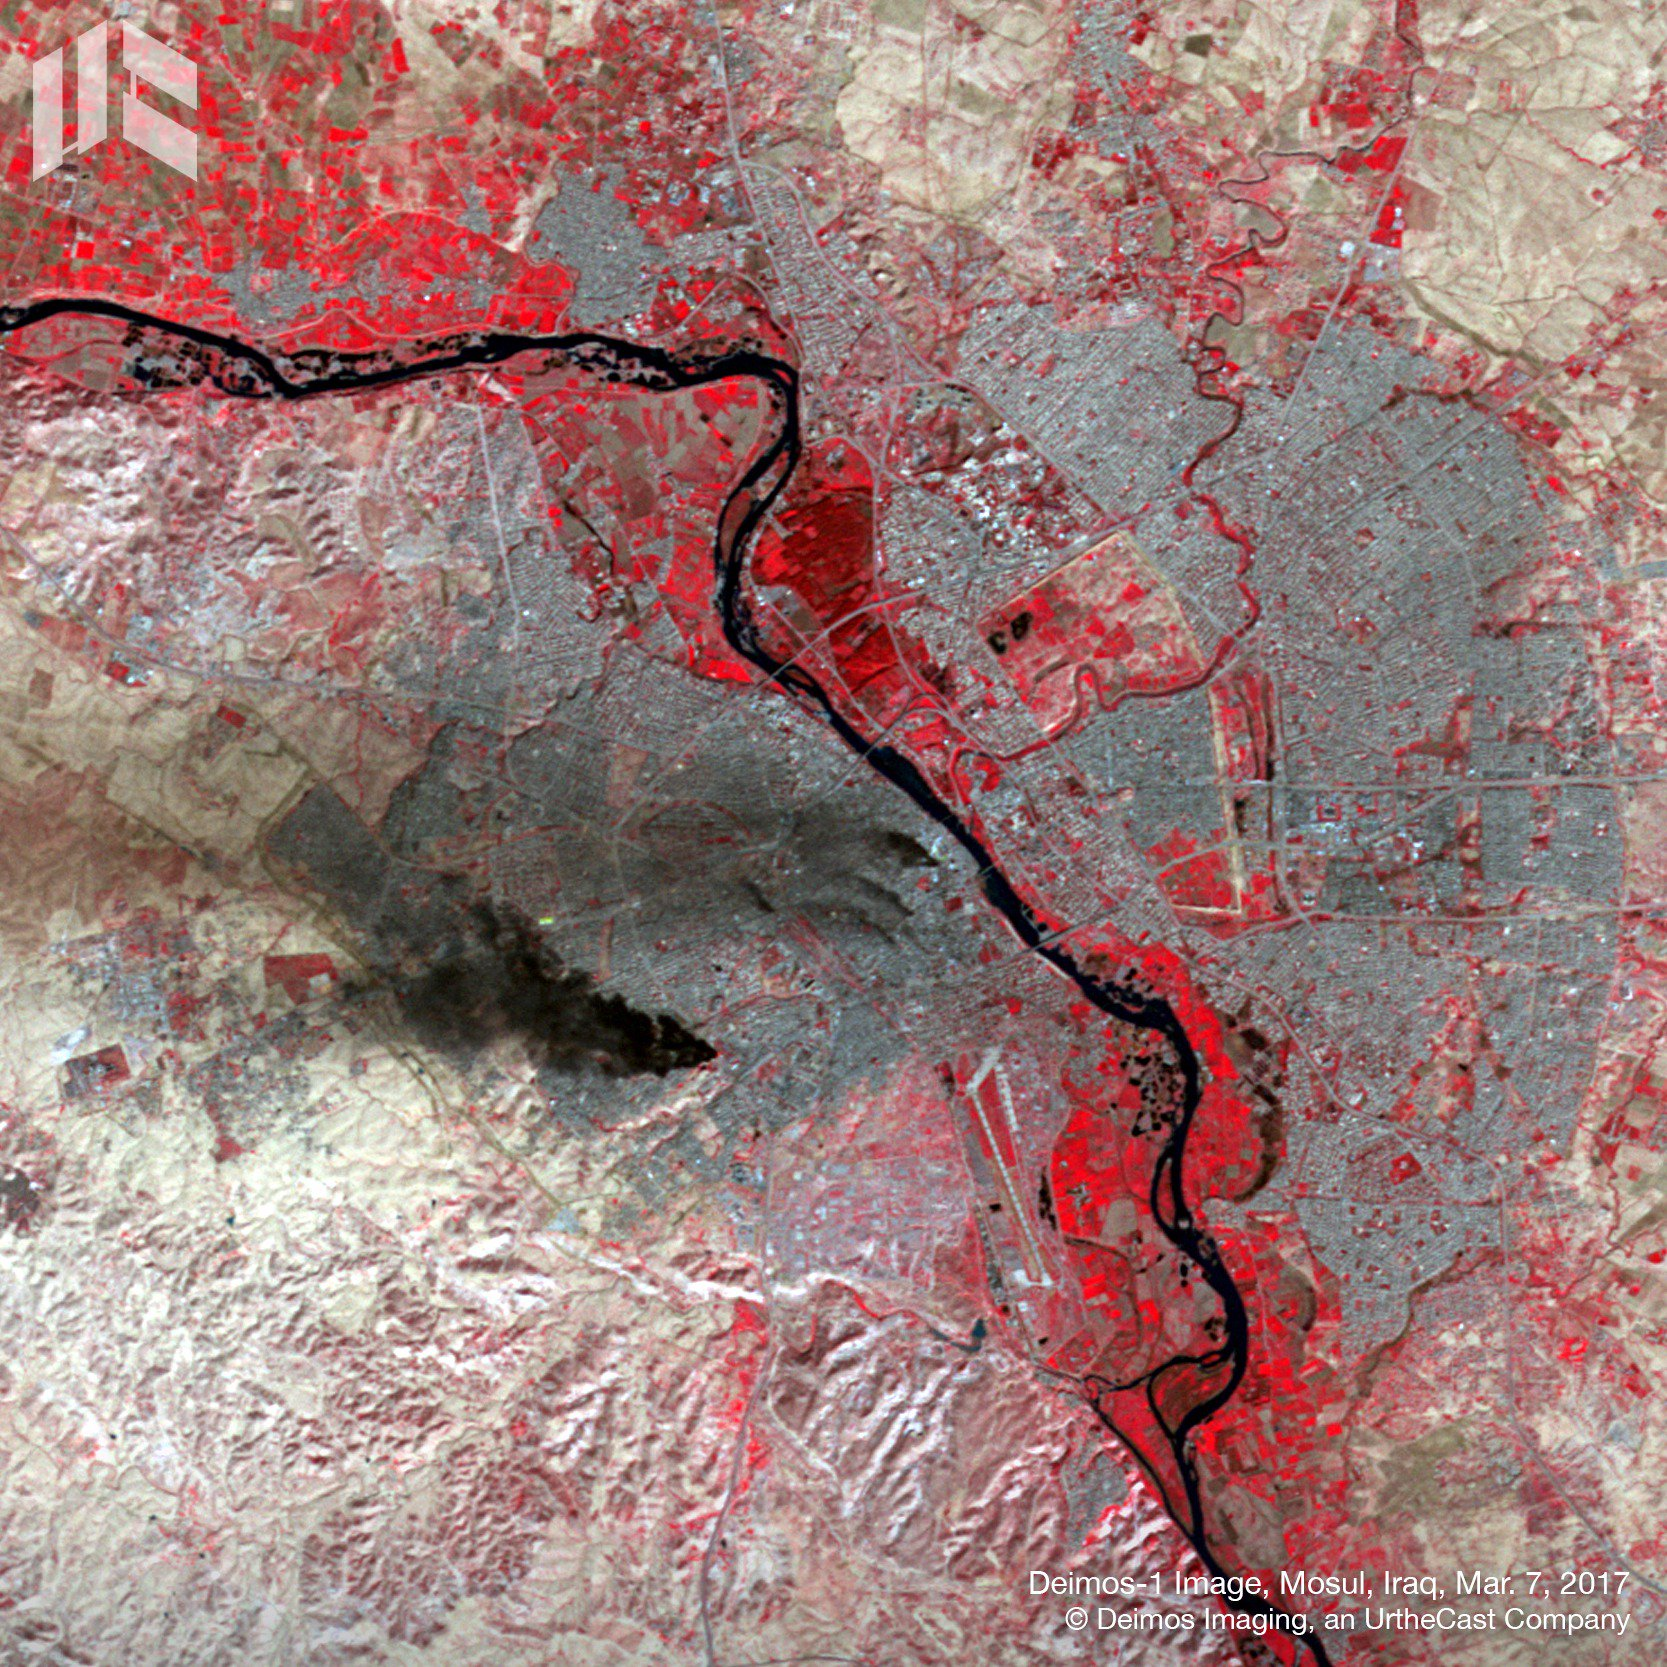 #DEIMOS1 captured smoke over #Mosul earlier today (March 7), as Iraqi troops push towards the heart of the city. #MosulOffensive #MosulOps https://t.co/NSc7B8Z3Td